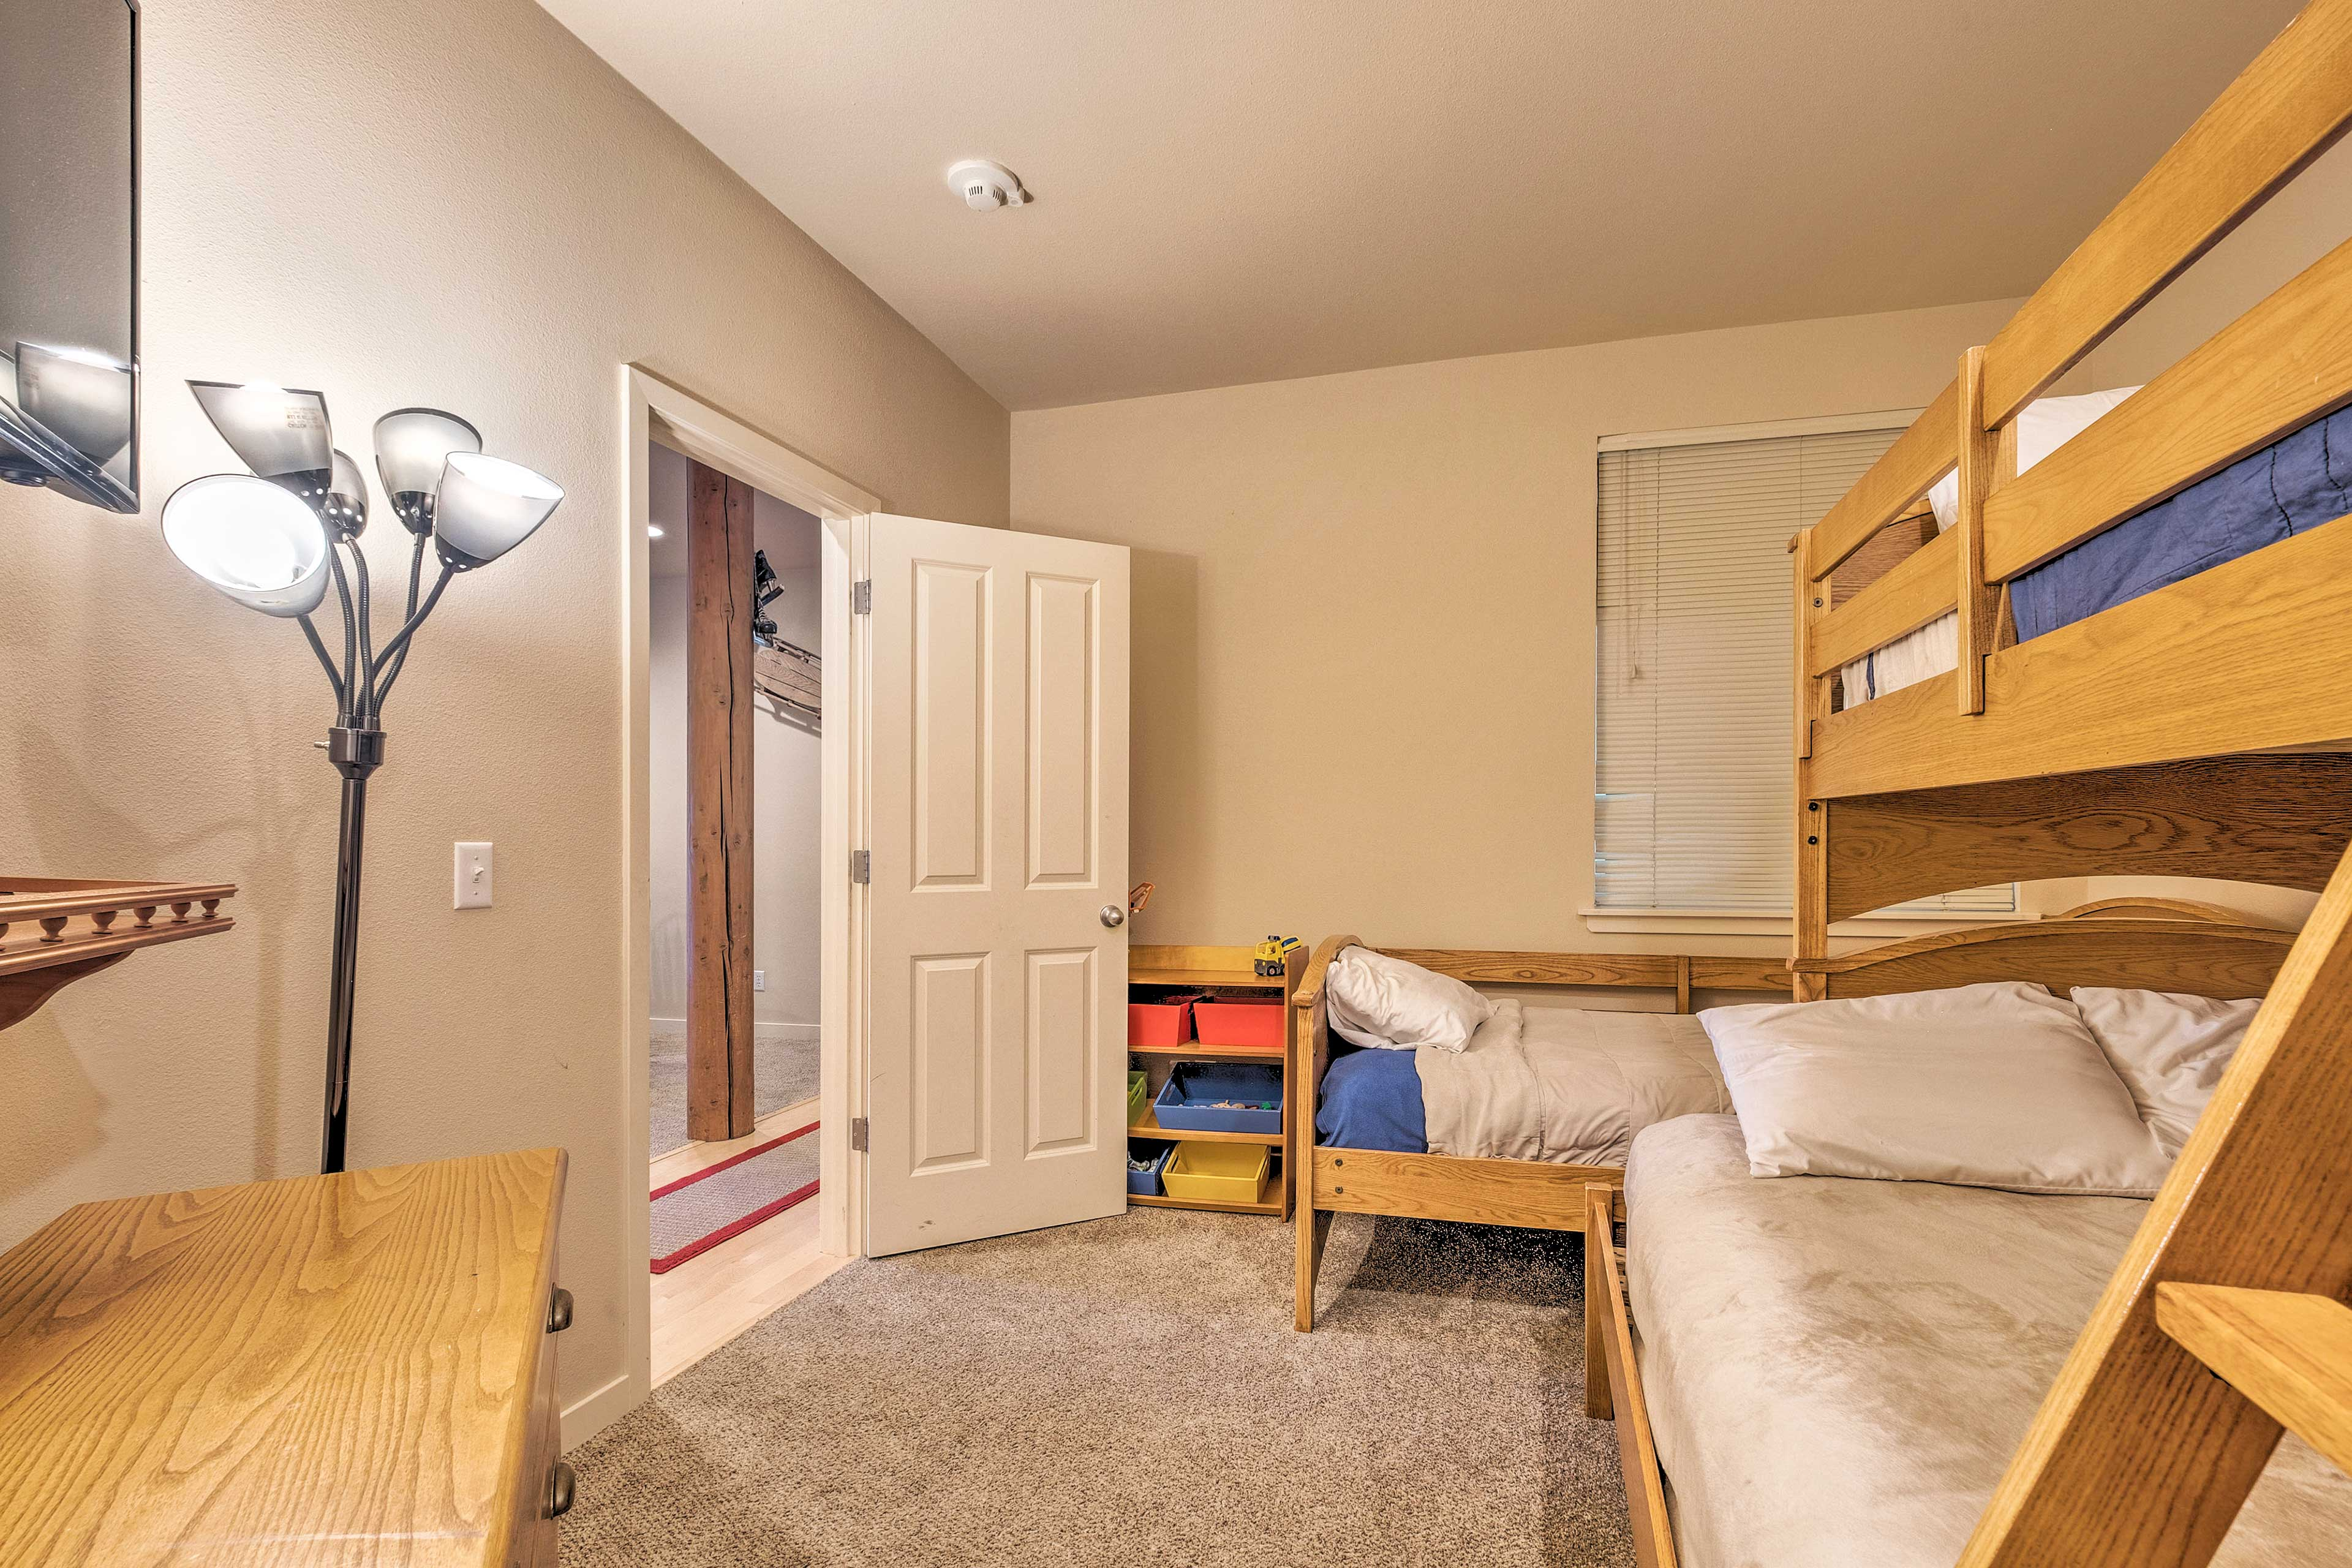 The room offers a twin bed, twin-over-full bunk set and cable TV.